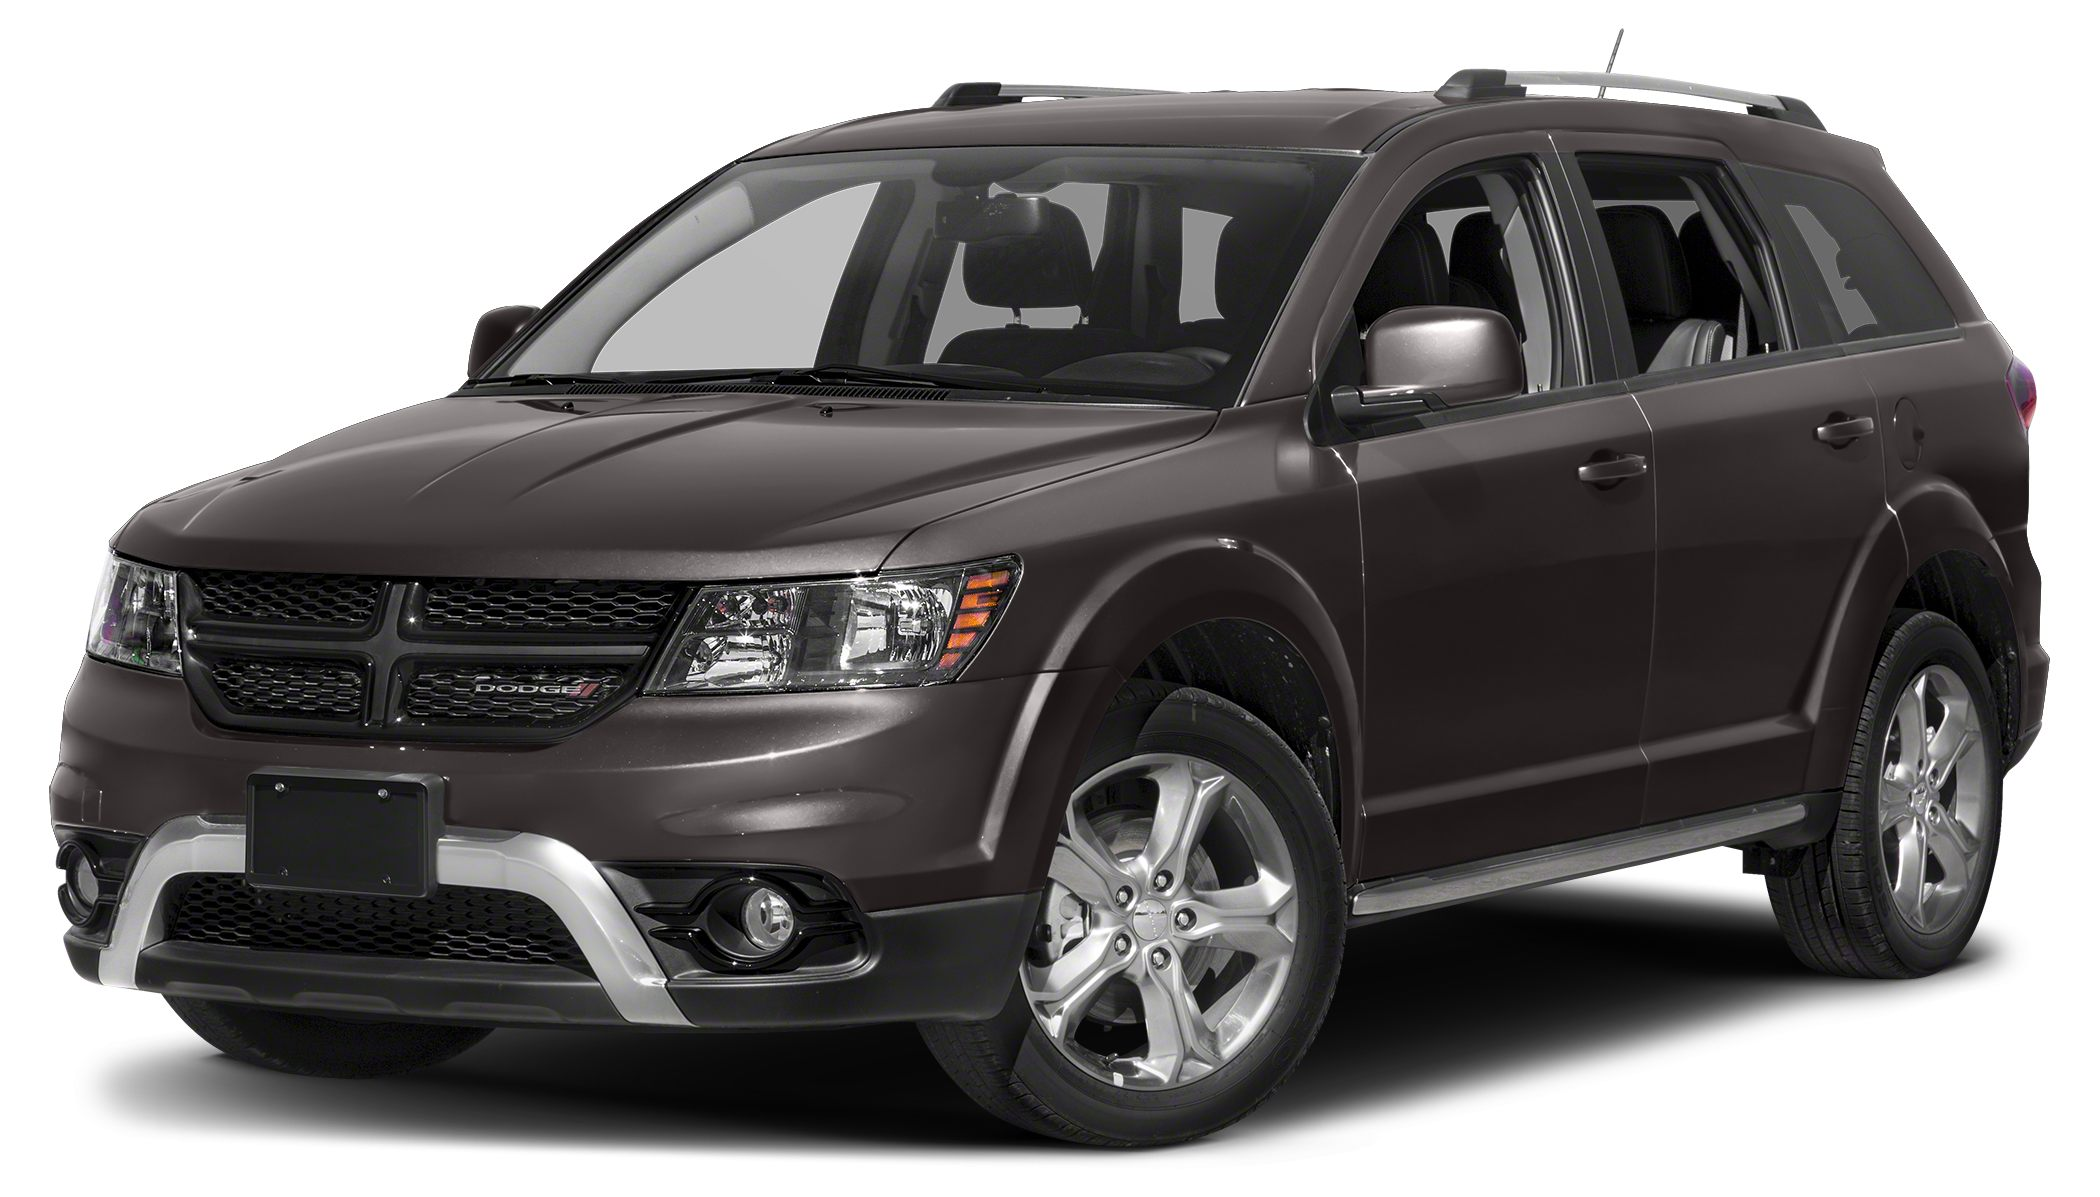 2015 Dodge Journey Crossroad This 2015 Dodge Journey 4dr FWD 4dr Crossroad features a 36L V6 CYLI